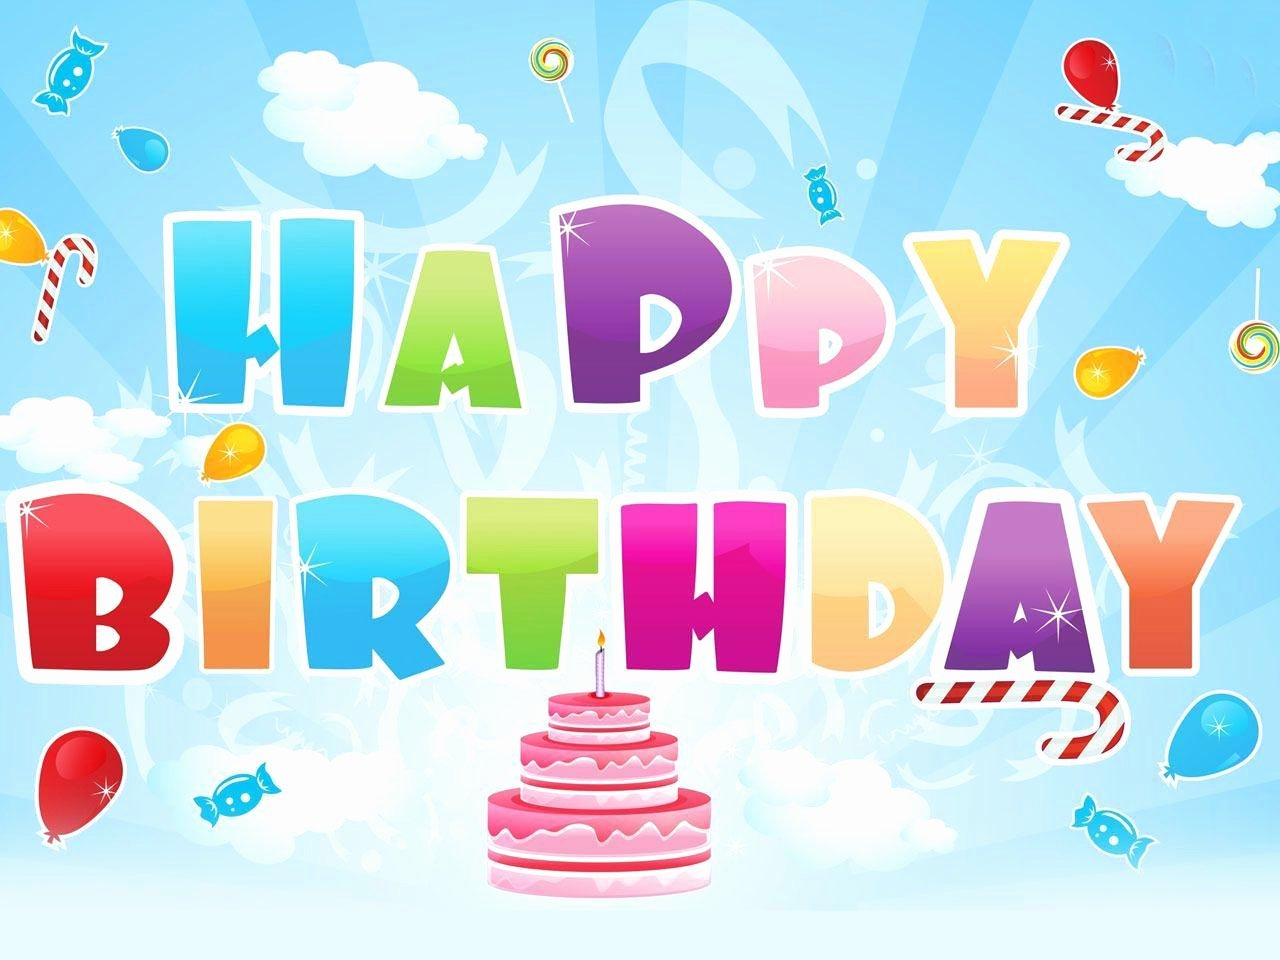 Happy Birthday Background Images Elegant Happy Birthday Backgrounds